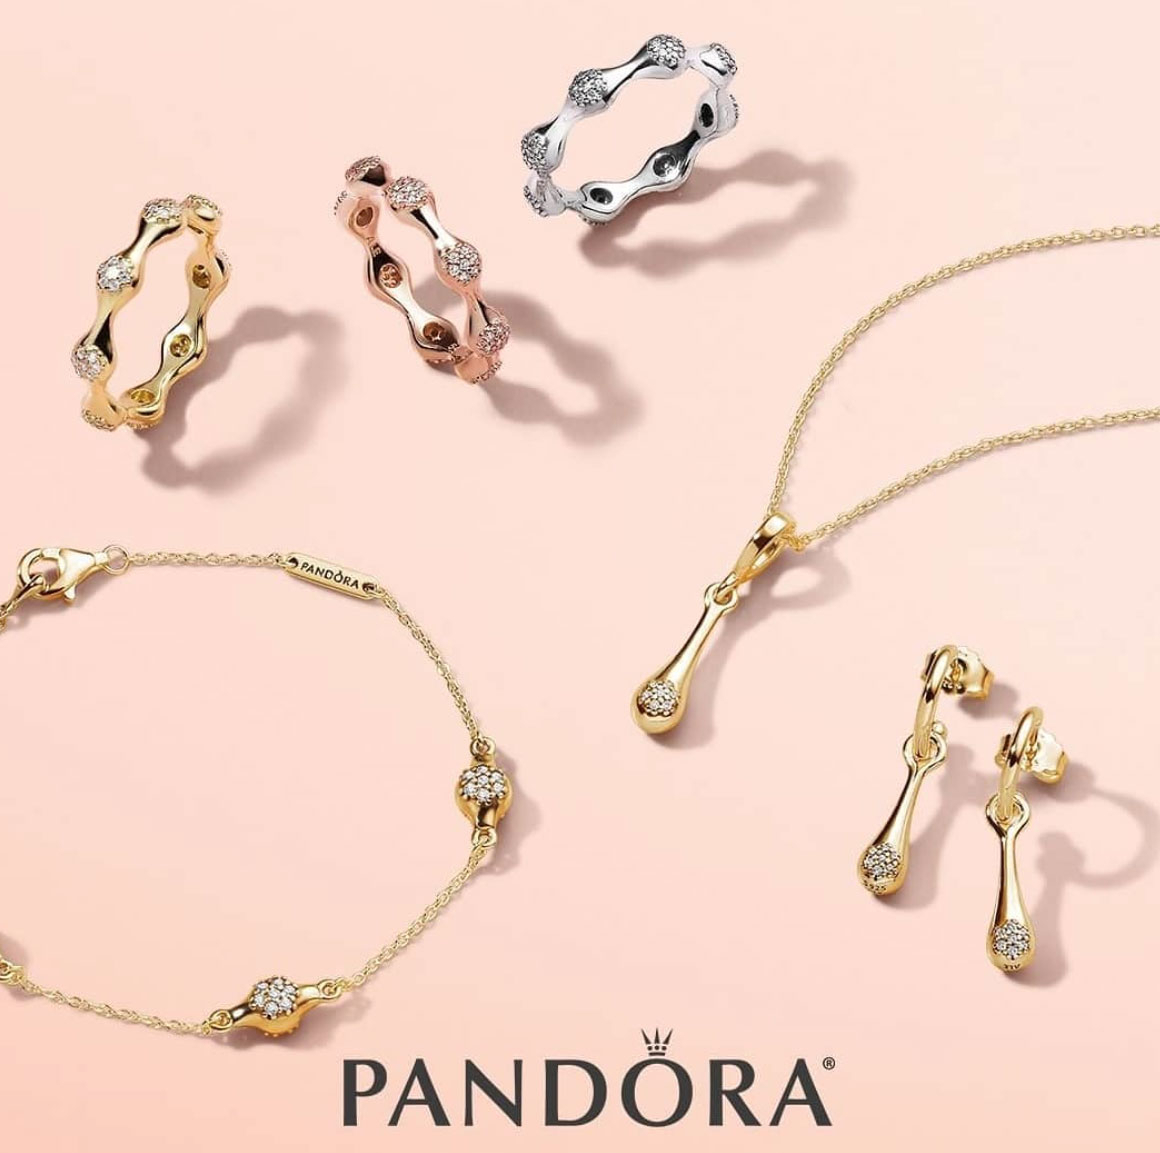 Pandora Pre Autumn 2018 Live Images – The Art Of Pandora | More Than With 2019 Pandora Moments Medium O Pendant Necklaces (View 25 of 25)